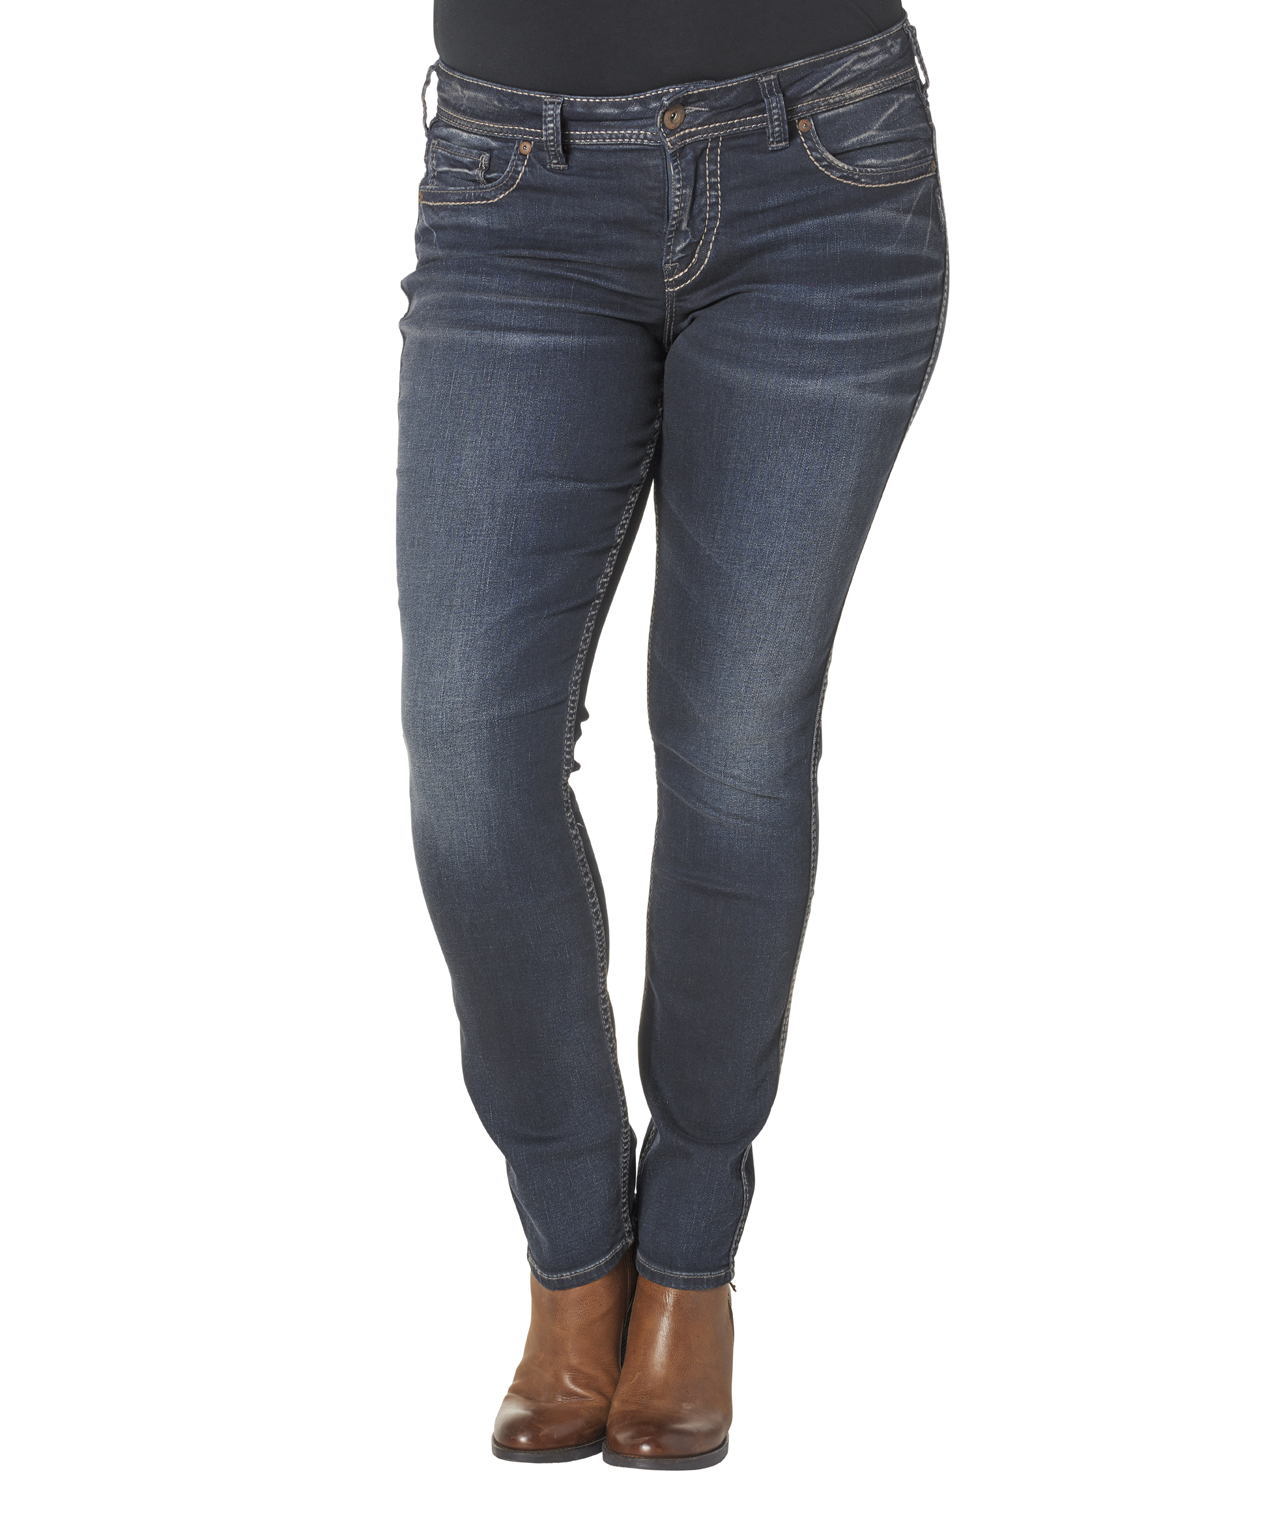 Shop Online for the Latest Designer Silver Jeans Co. Jeans for Women at sgmgqhay.gq FREE SHIPPING AVAILABLE! Macy's Presents: The Edit - A curated mix of fashion and inspiration Check It Out Free Shipping with $75 purchase + Free Store Pickup.